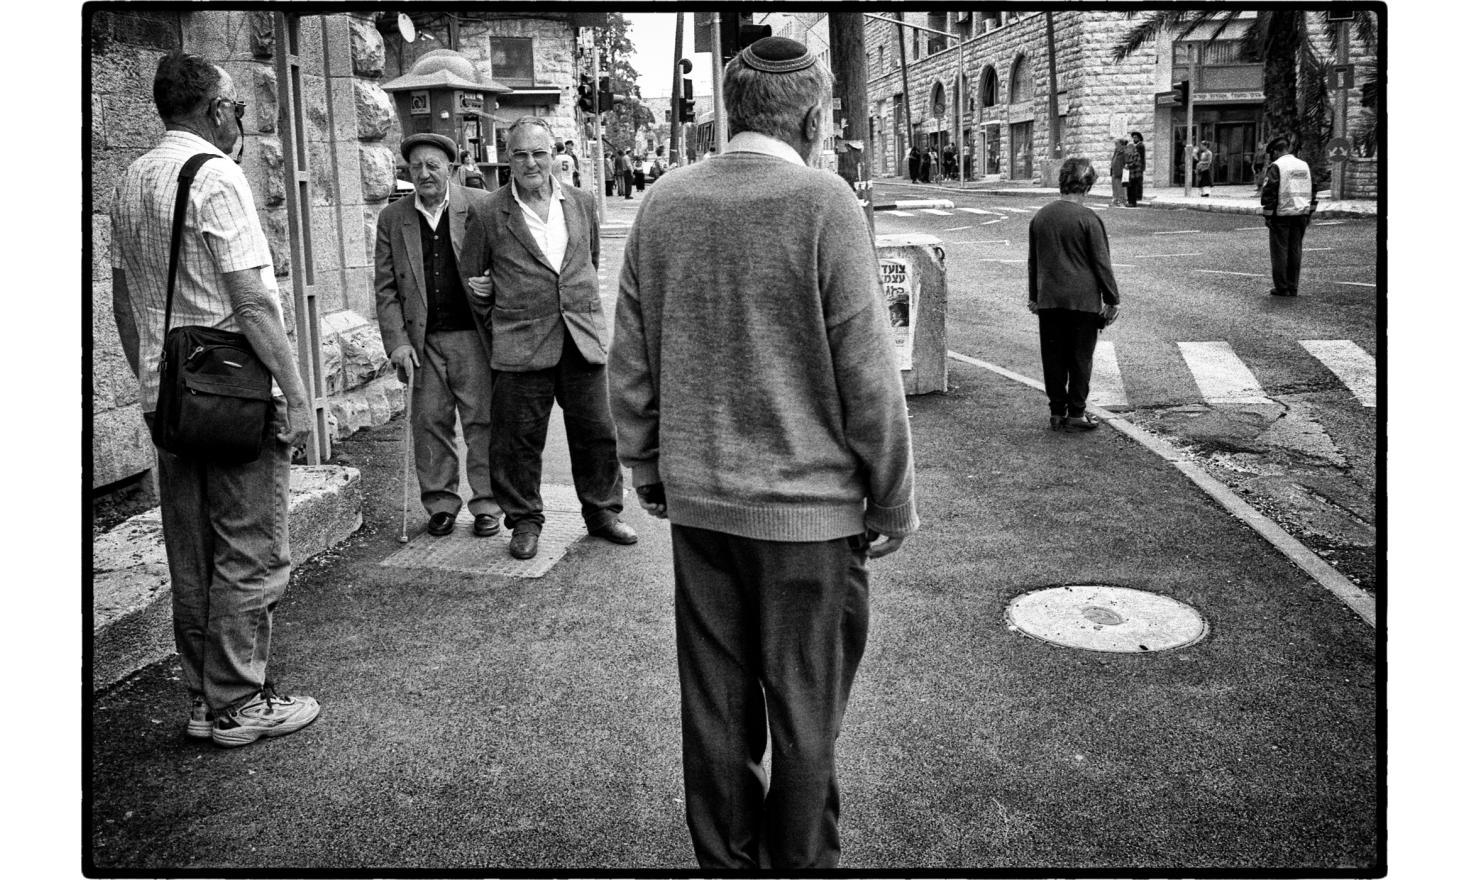 At 10 am, sirens sounded throughout Israel to celebrate Remembrance Day and the Holocaust hero. Jerusalem, Israel. April 2004.